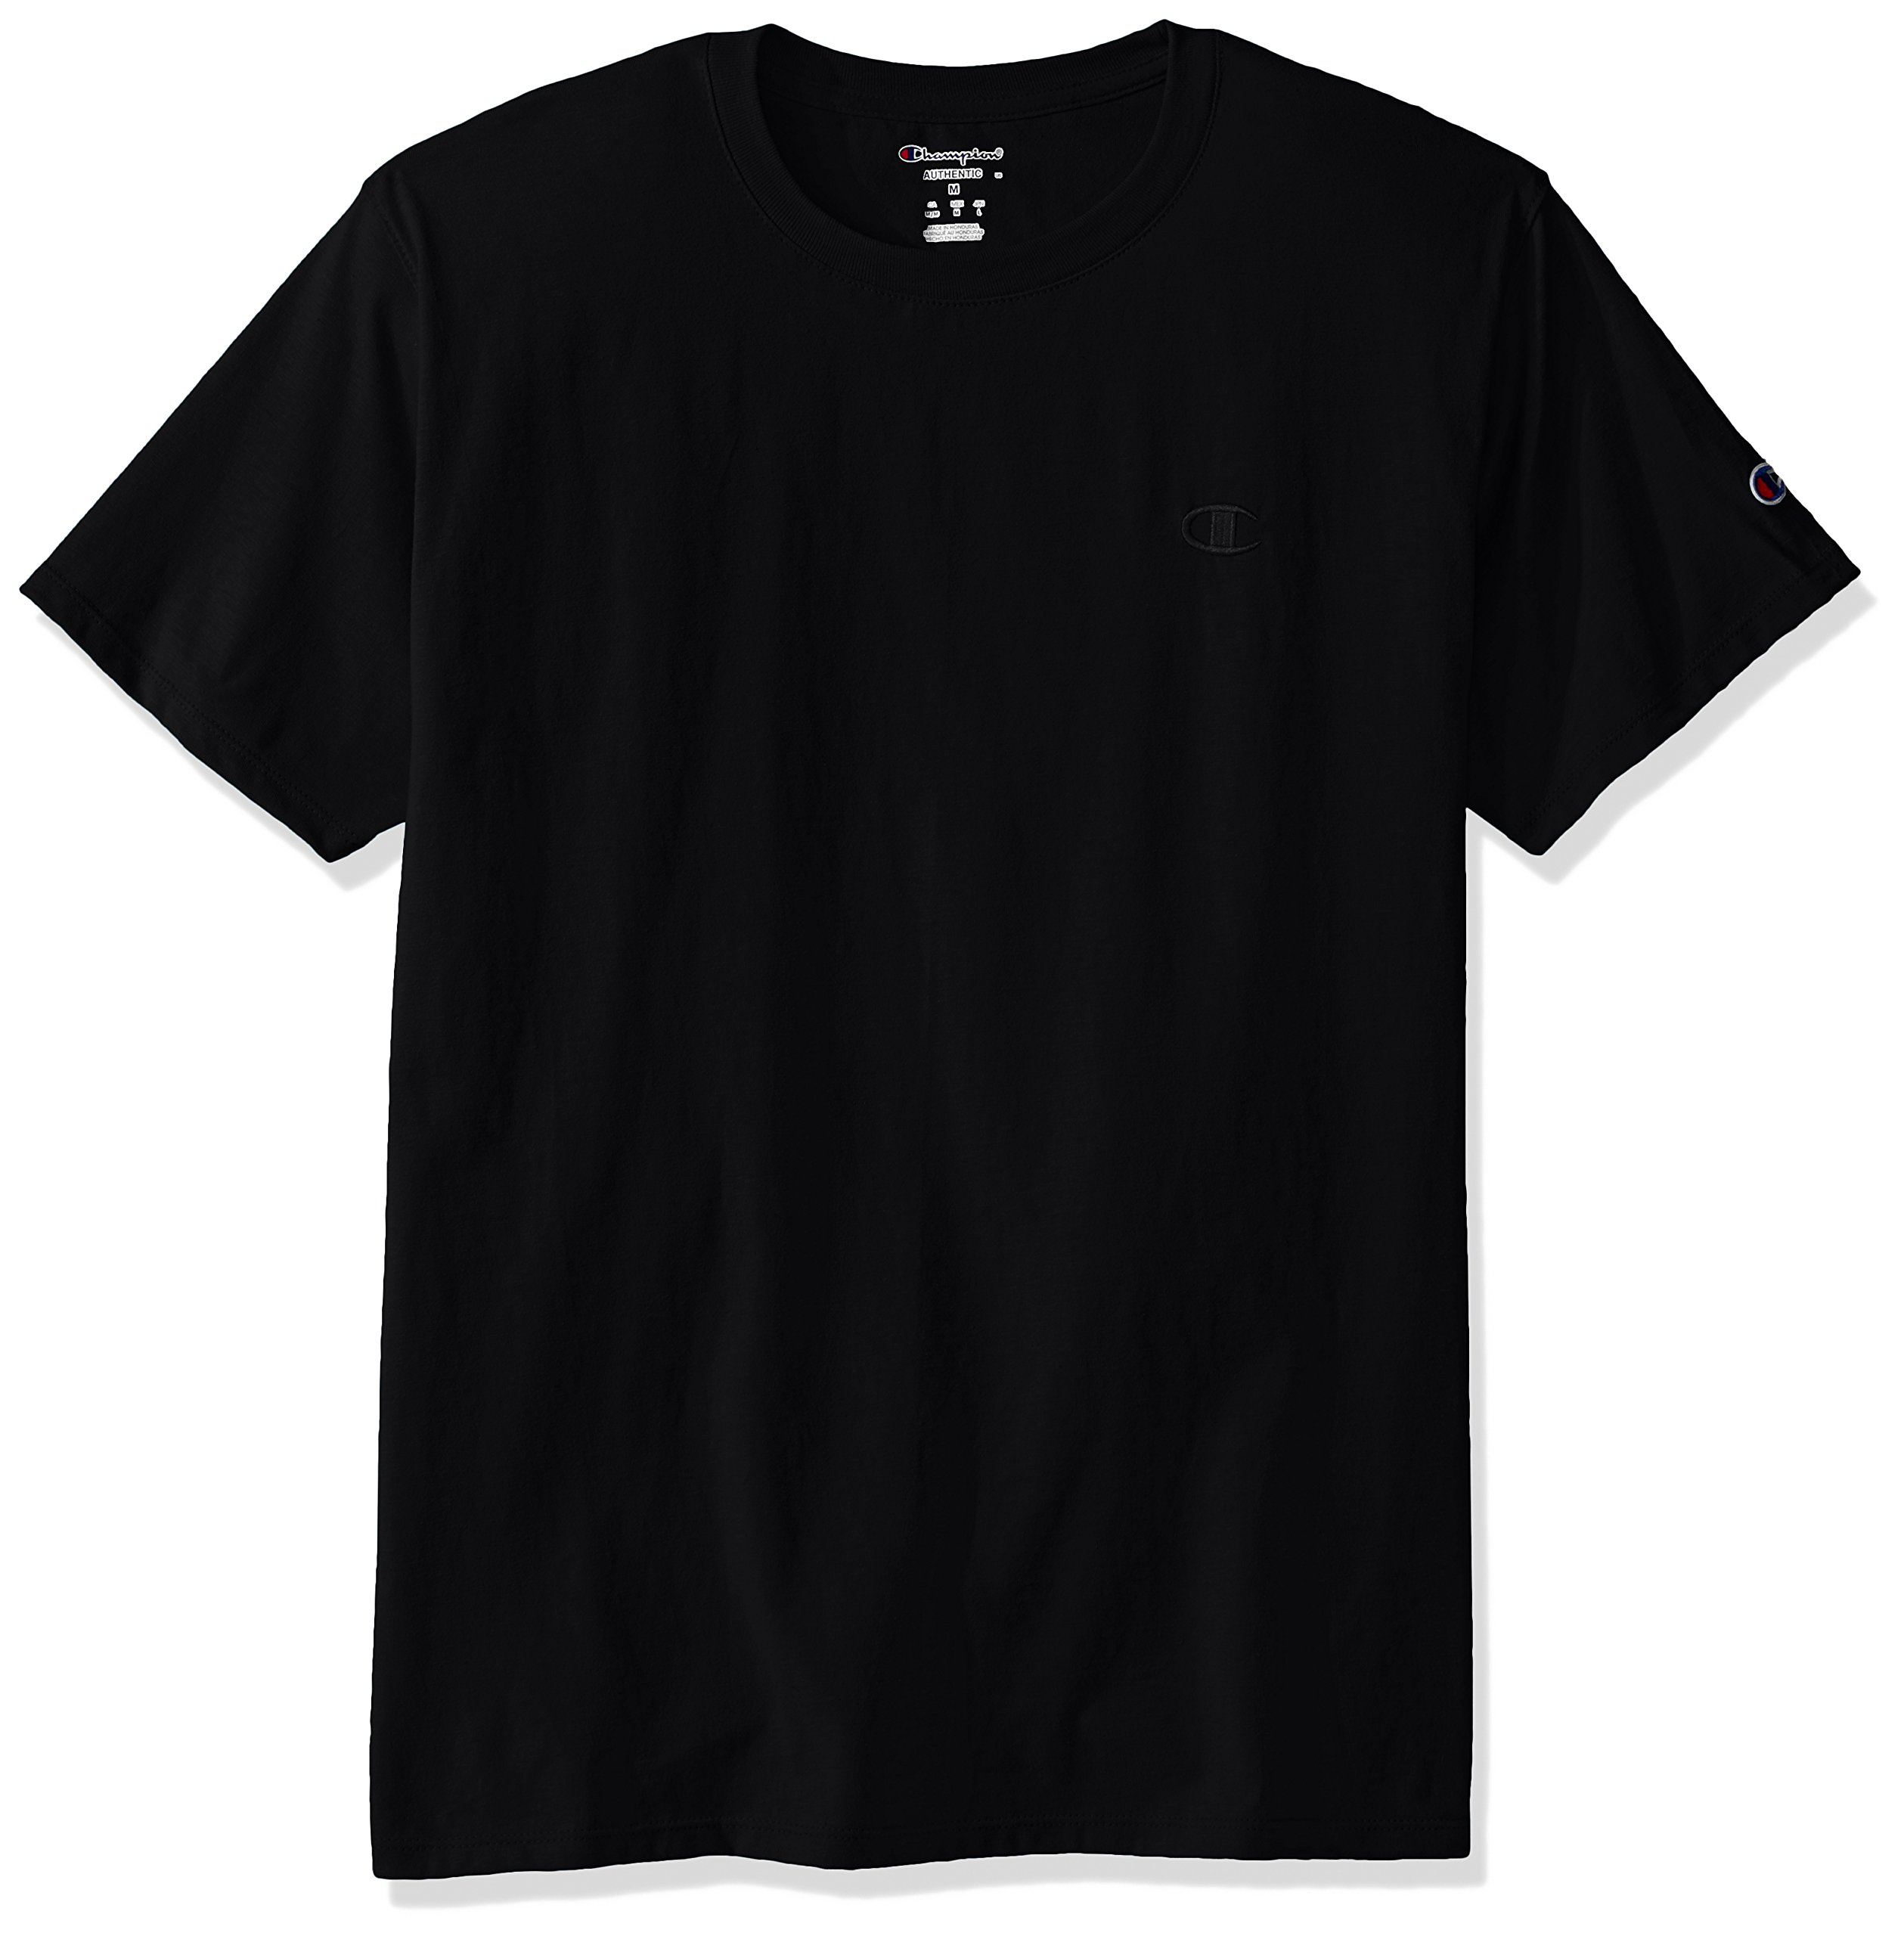 Champion Men's Classic Jersey T-Shirt, Black, M by Champion